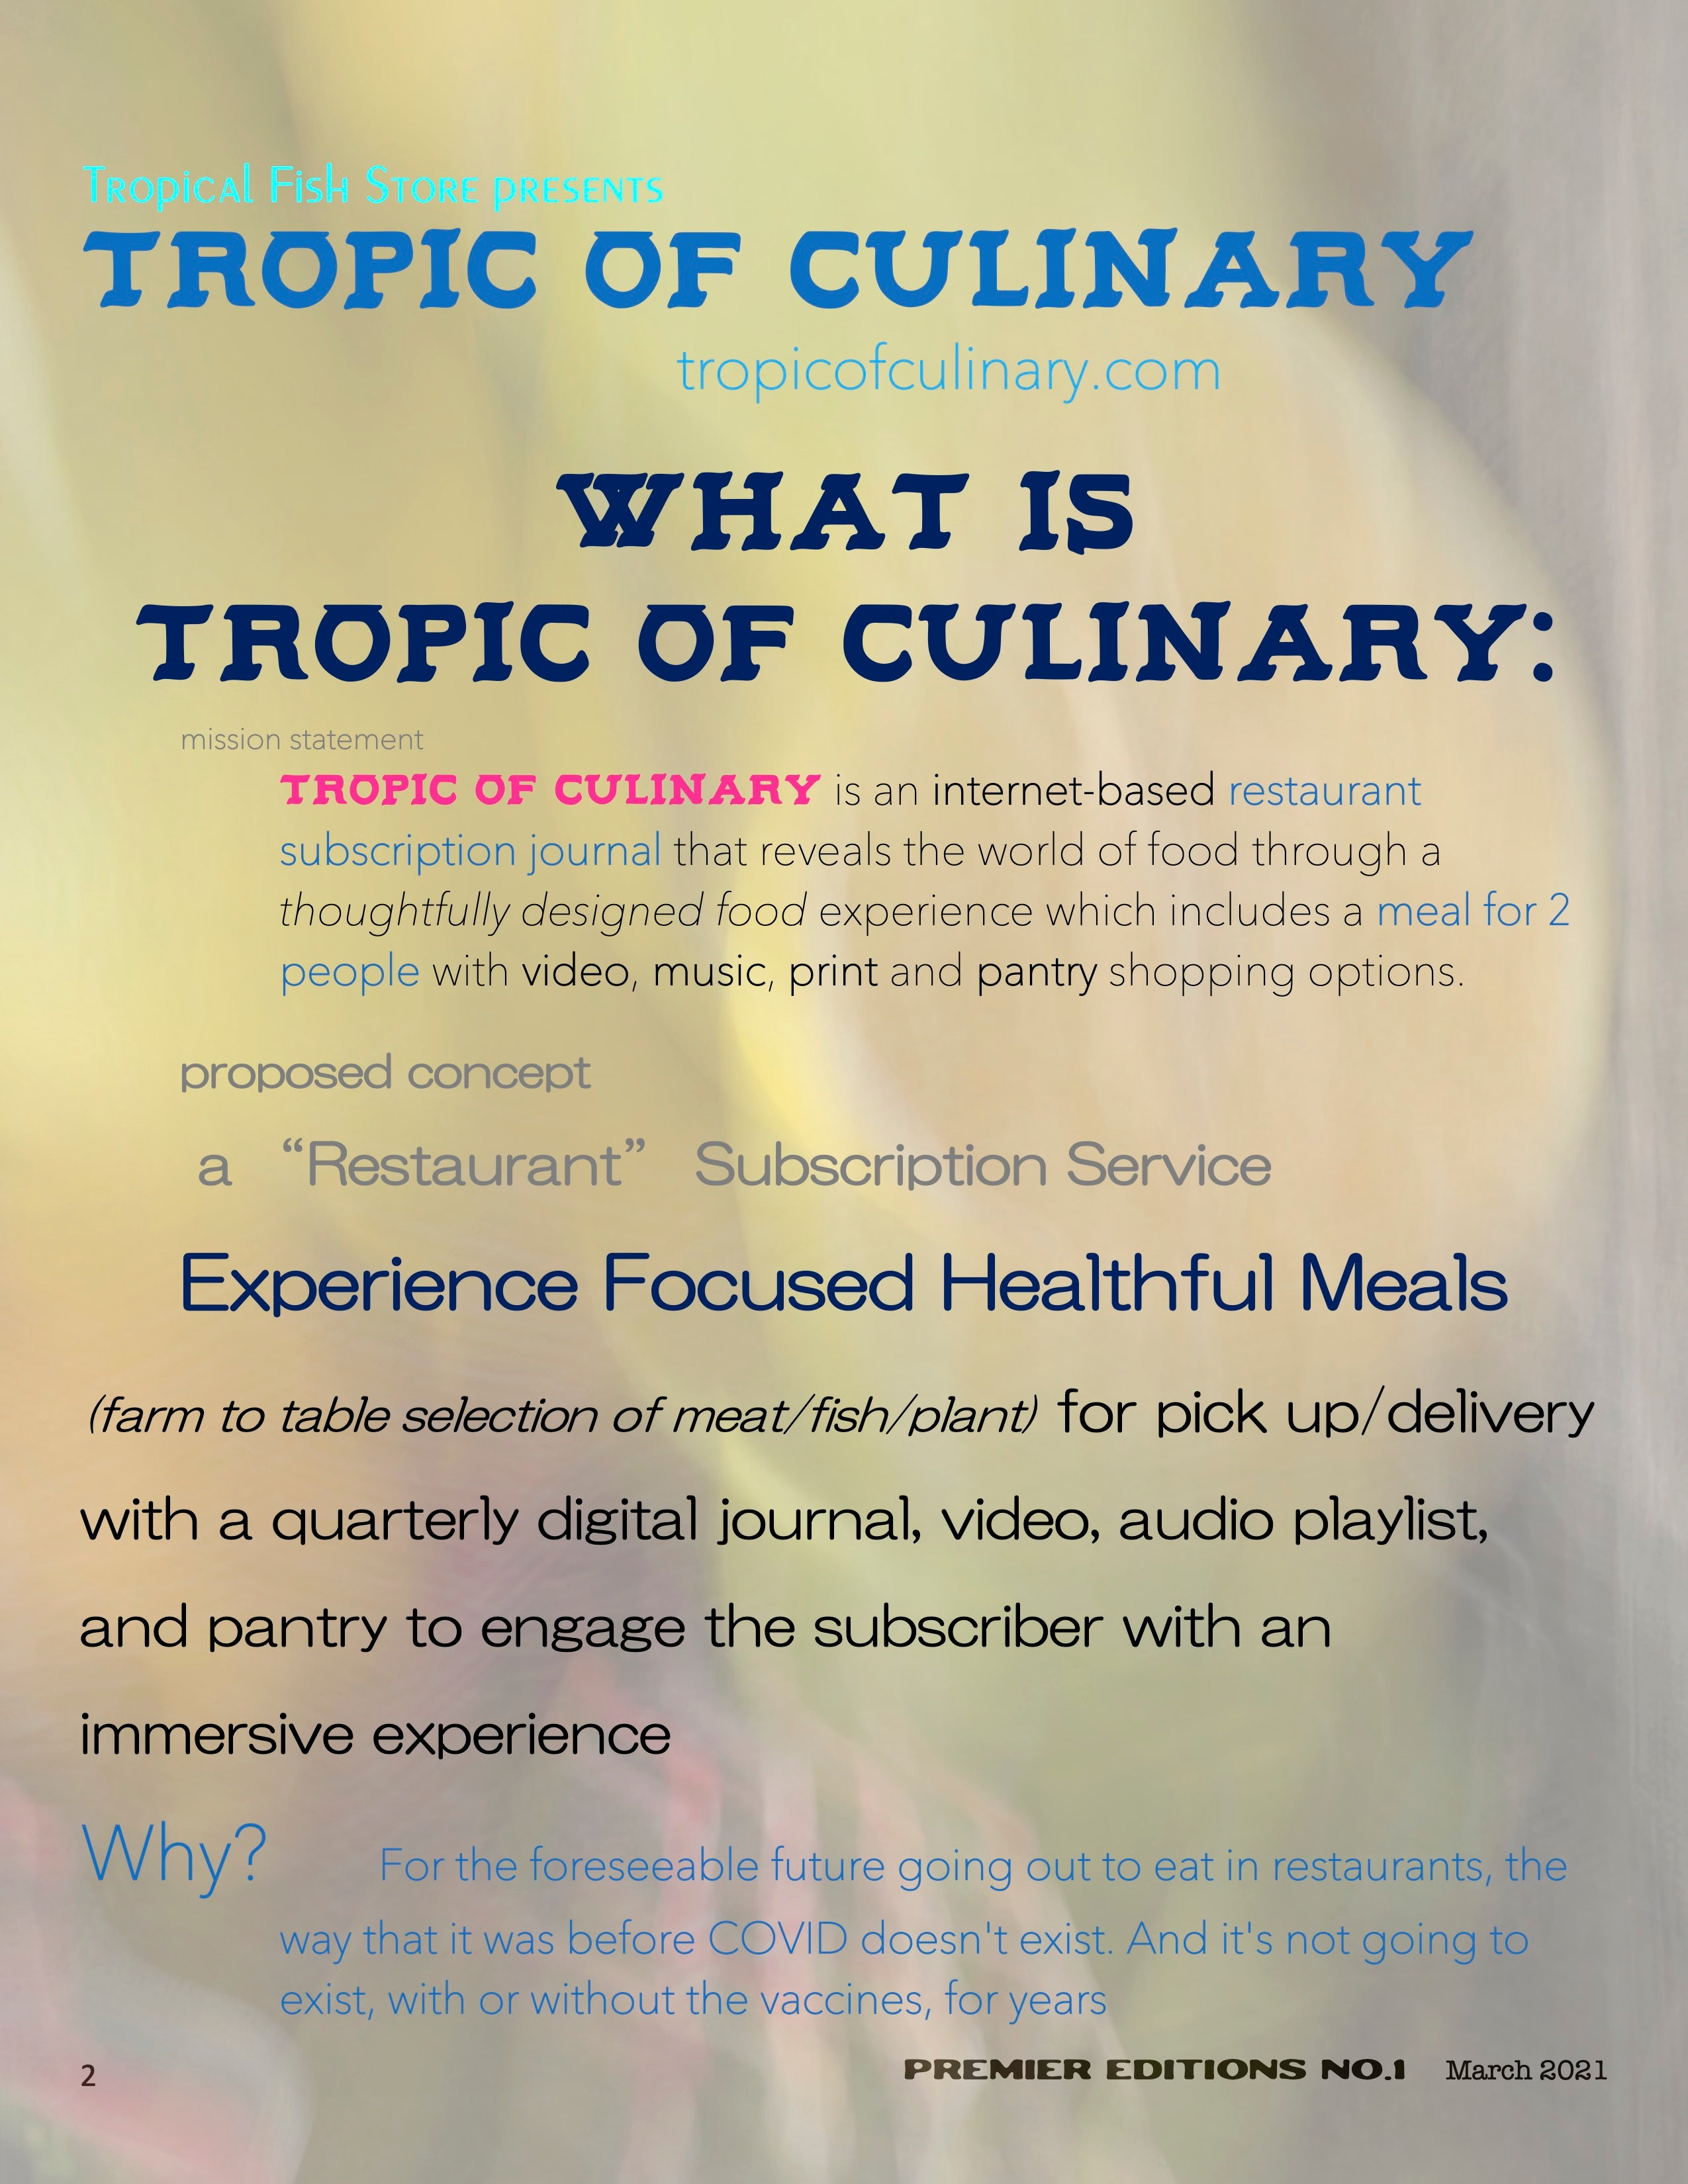 Tropic of Culinary is a Social Media PopTROPIC OF CULINARY is an internet-based restaurant that you can order from a la carte on a weekly basis or access with a once-a-month subscription.  We offer a farm to table selection of meat/fish/plant-based foods which change each week with online media content & pantry shopping options.  Delivery to your door or pick up at 3 locations across Seattle each Fridays. Currently running friends & family beta tests: with a launch to the public on 05/03/2021-Up Restaurant in Seattle.  A Farm to Table Ghost Kitchen where you order food online for pick up or delivery.   A unique Washington State Culinary Experience from Top Chef Ty-Lör Boring.  A virtual brand delivery-only concept for Downtown Seattle, 98101